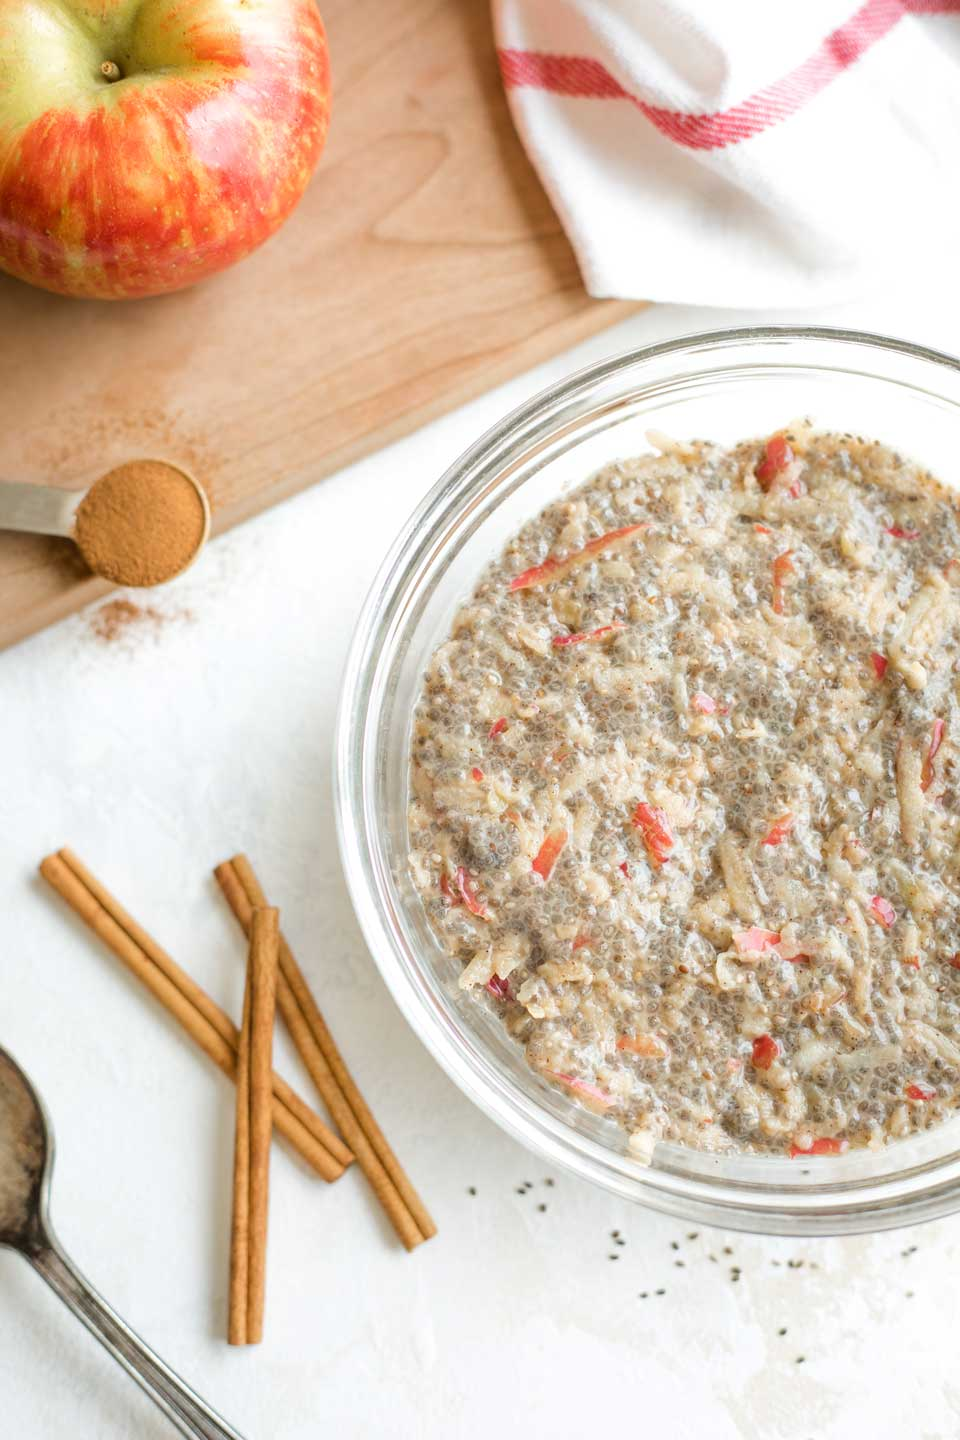 overhead of a bowl filled with this chia pudding recipe, with cinnamon sticks, a red-striped towel, an apple and a serving spoon nearby